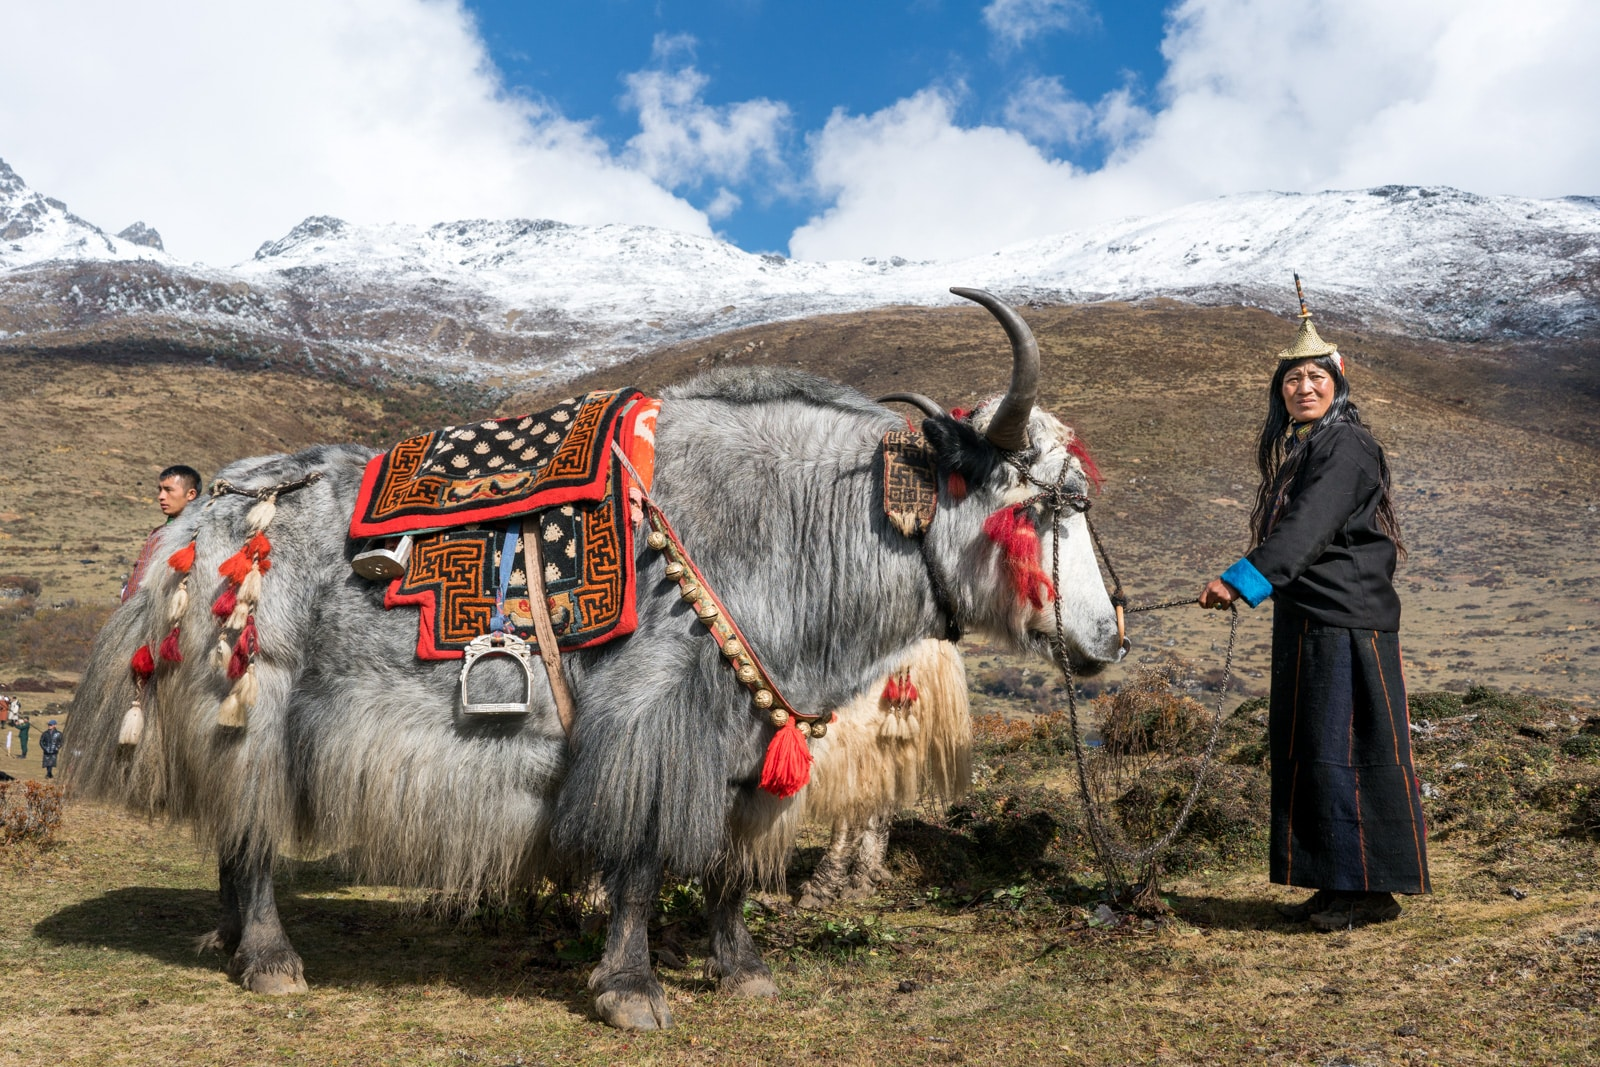 Photos of Bhutan - Layap woman with yak at the Royal Highlander Festival - Lost With Purpose travel blog